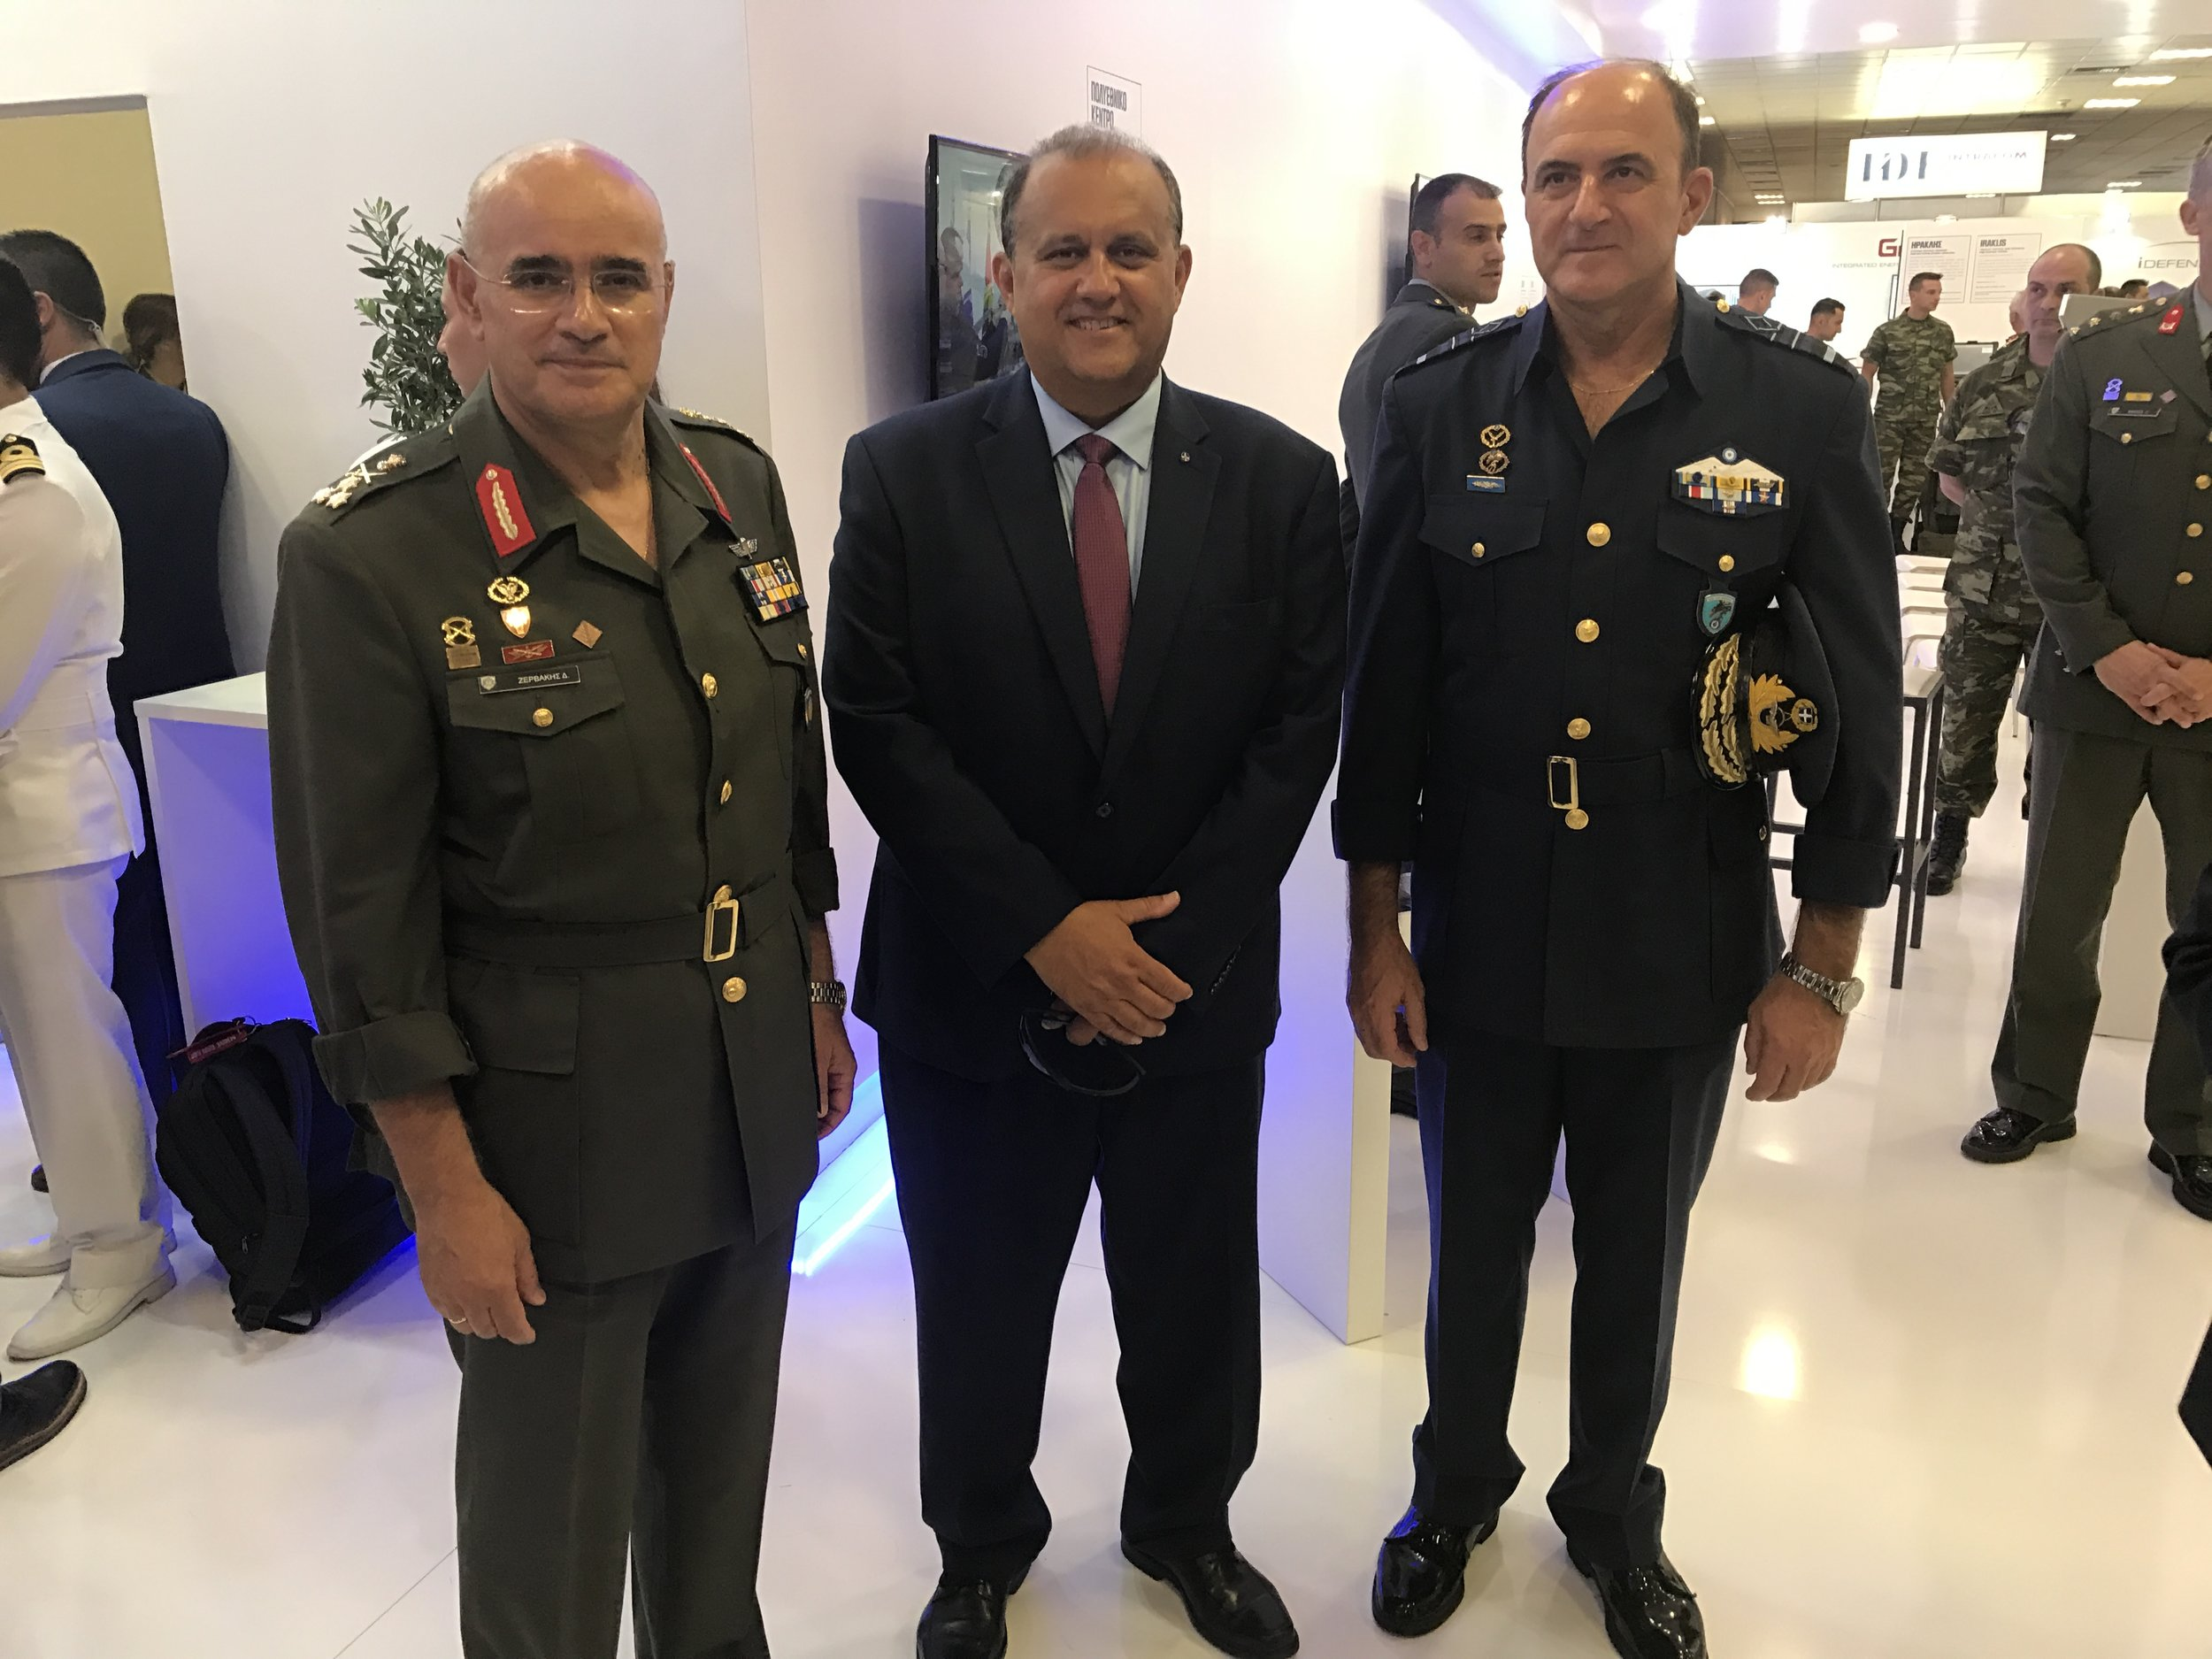 Nick Larigakis inside the Hellenic Armed Forces pavilion with (L) Lt. General Dimokritos Zervakis, Commander of the Hellenic First Army and (R), Lt. General Georgios Blioumis, Chief of Hellenic Tactical Air Force.